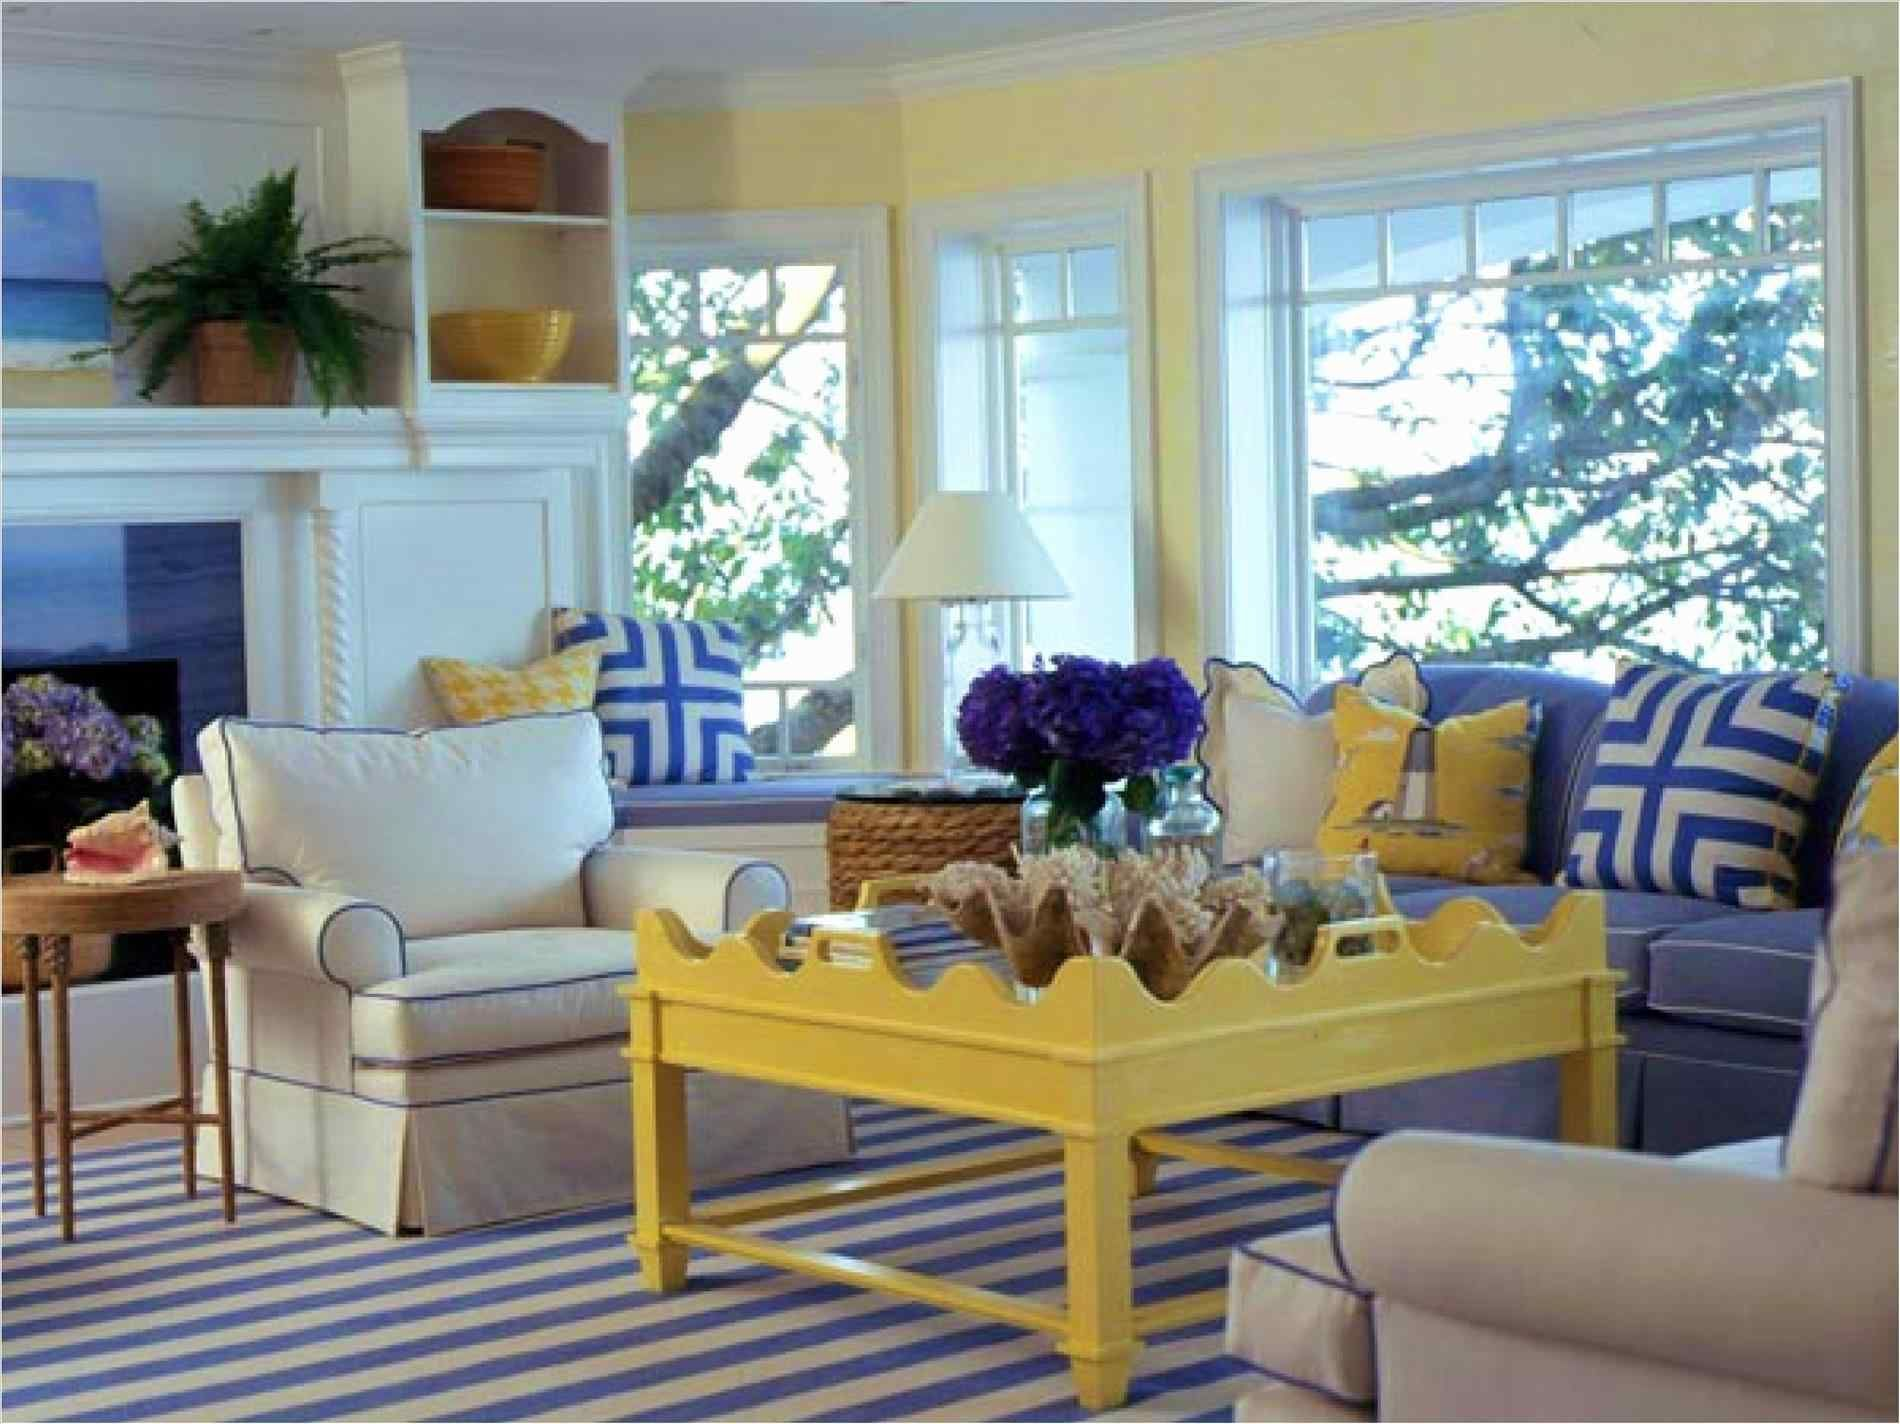 14 Incredible Navy Blue And Cream Living Room Ideas Breakpr Blue And Yellow Living Room Yellow Living Room Blue And Cream Living Room